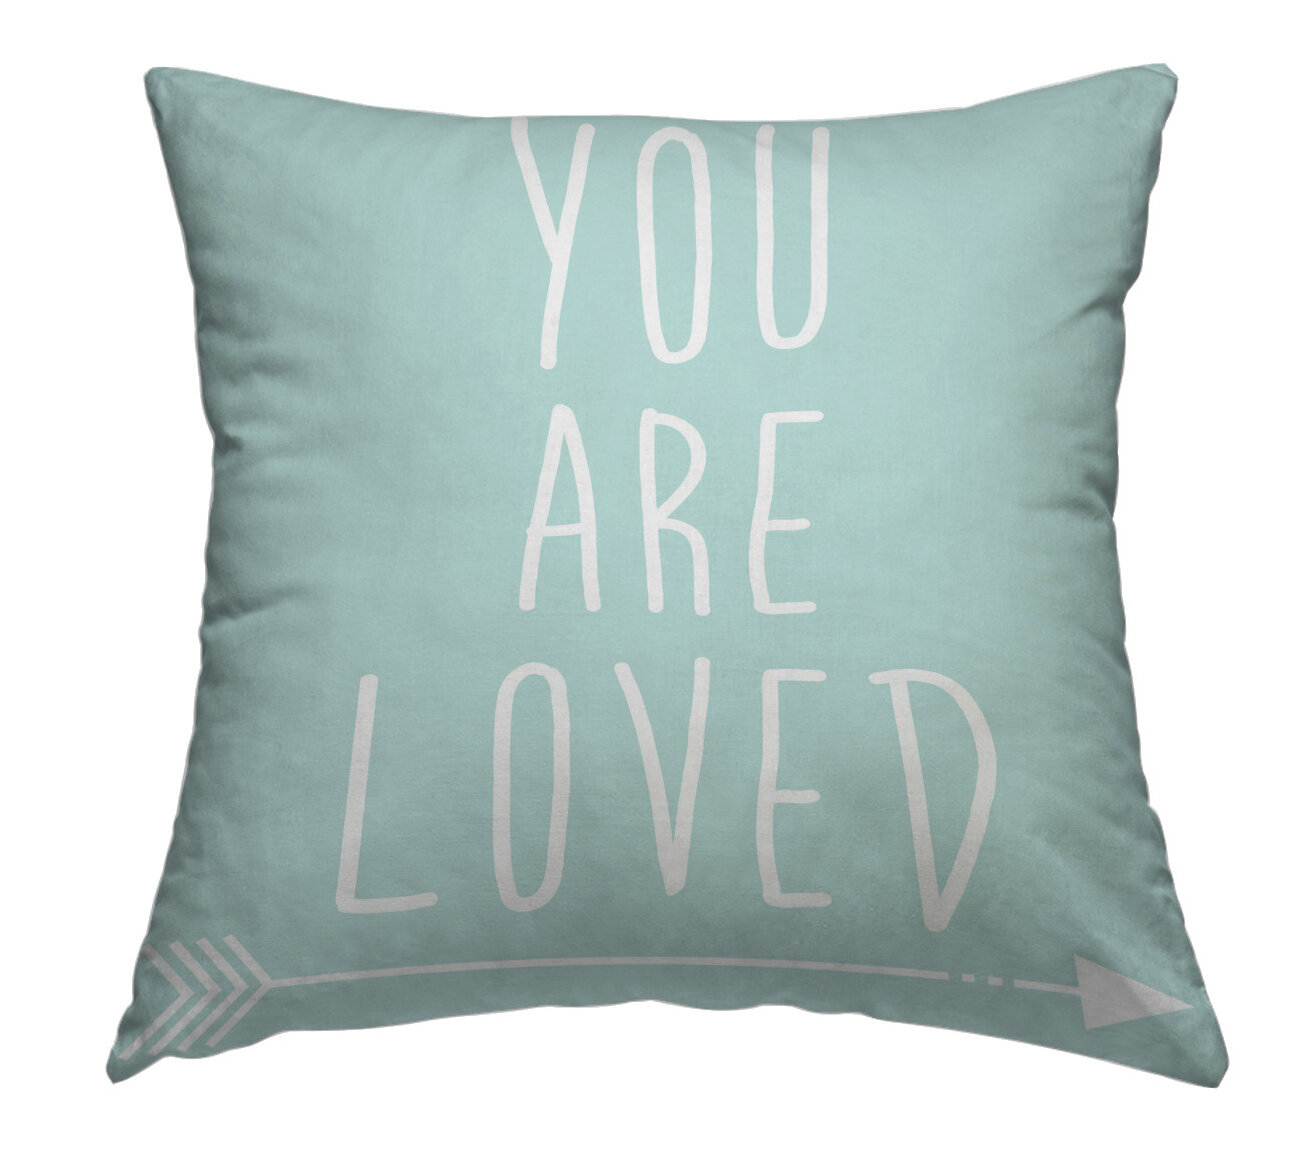 East Urban Home You Are Loved Throw Pillow Wayfair